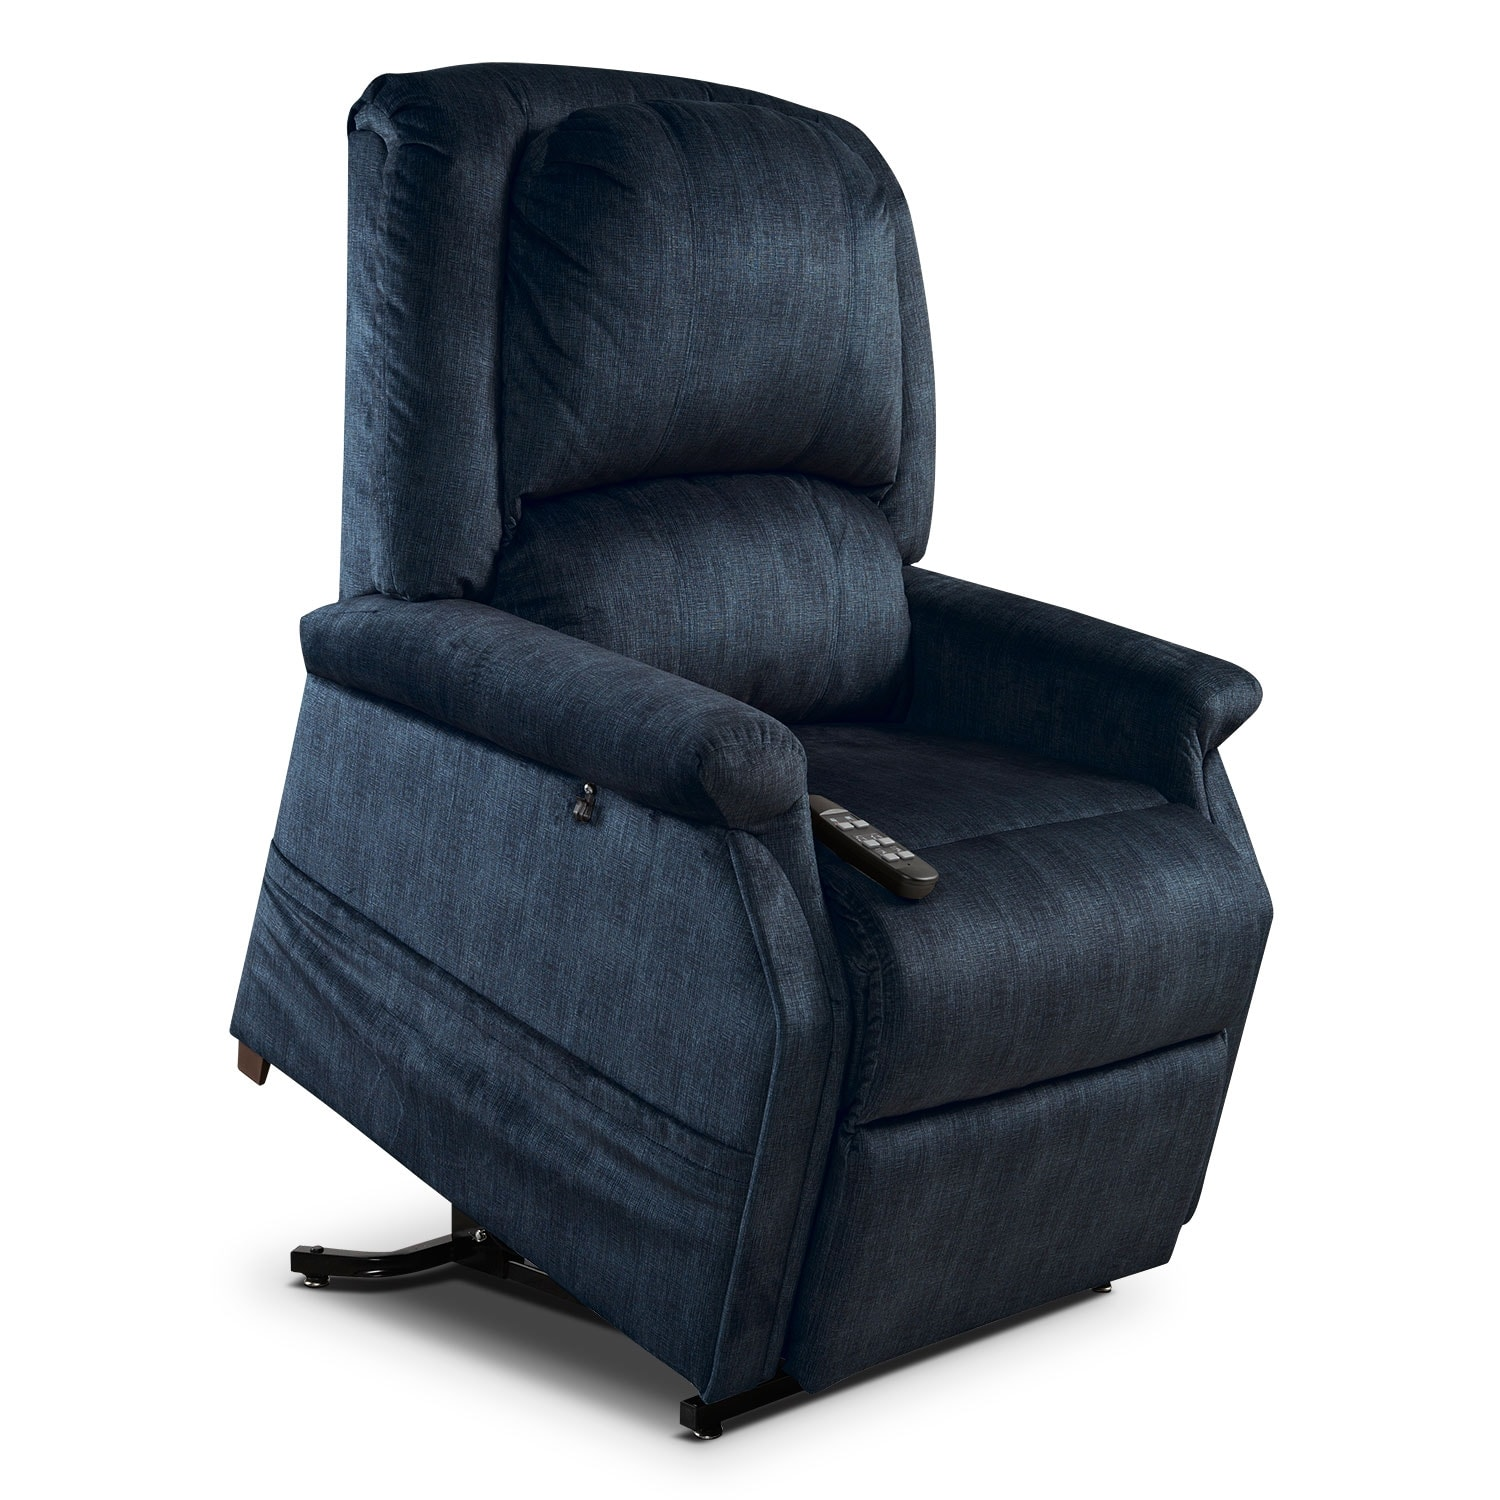 Living Room Furniture - Manny Lift Chair